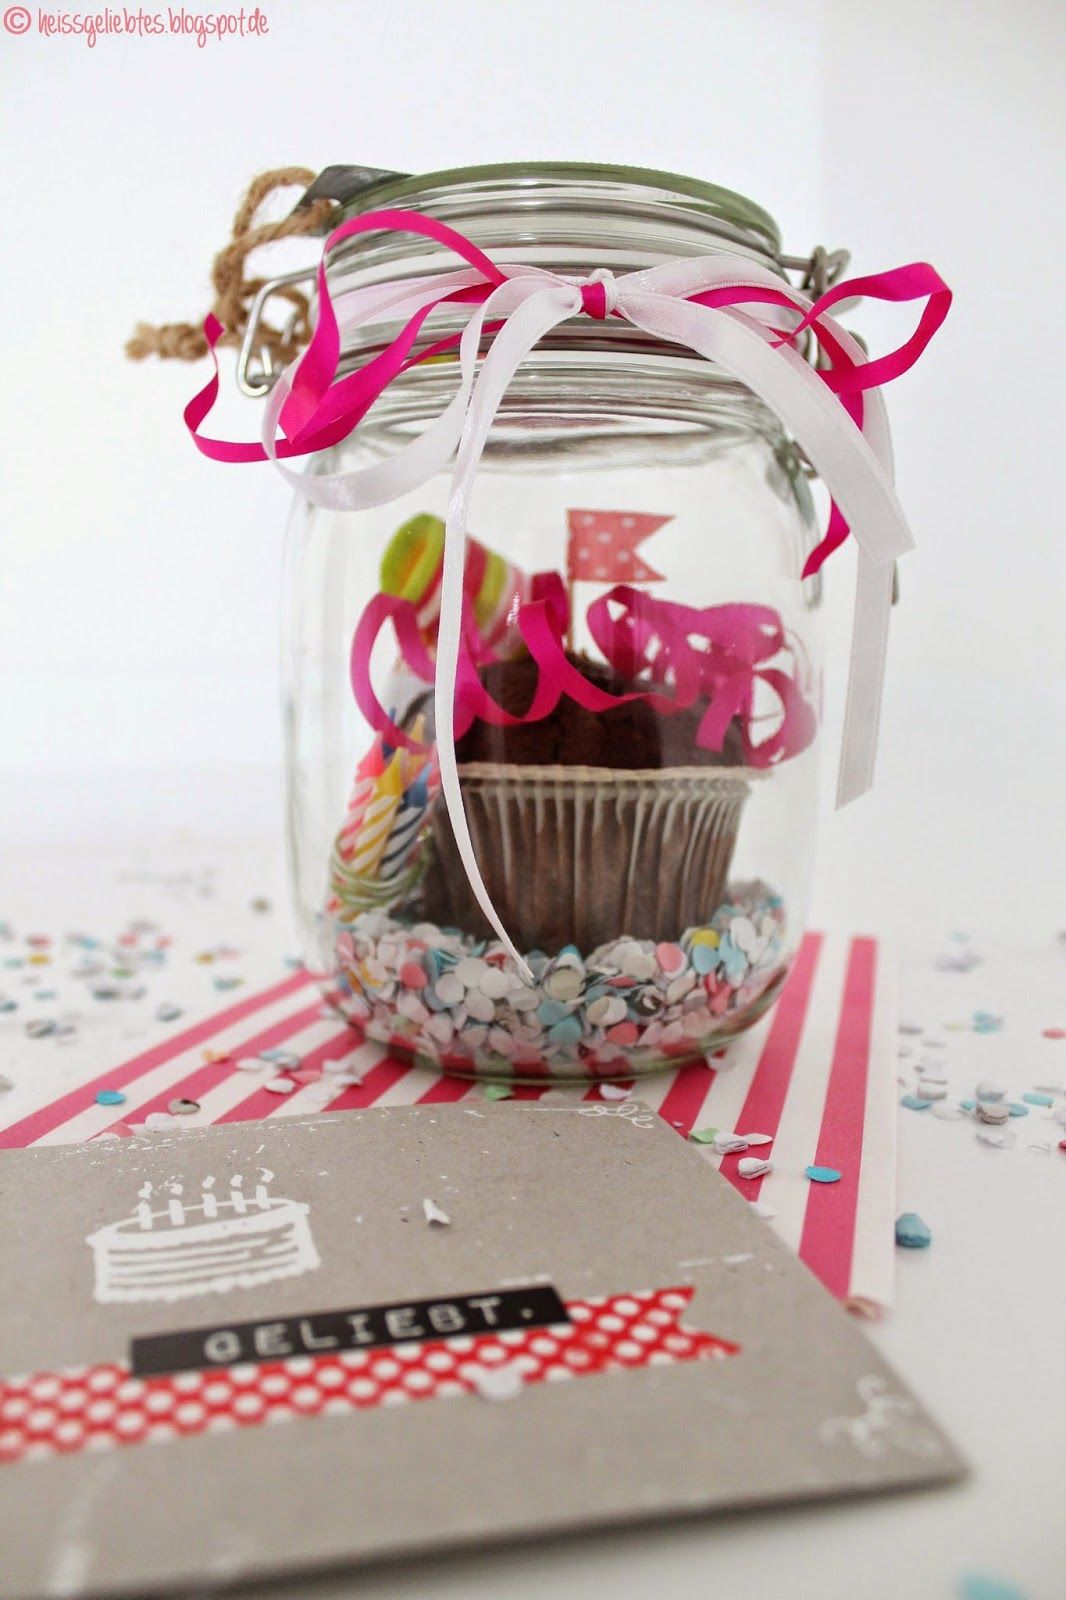 diy birthday in a jar geburtstag im glas muffin gift geschenk konfetti present diy. Black Bedroom Furniture Sets. Home Design Ideas